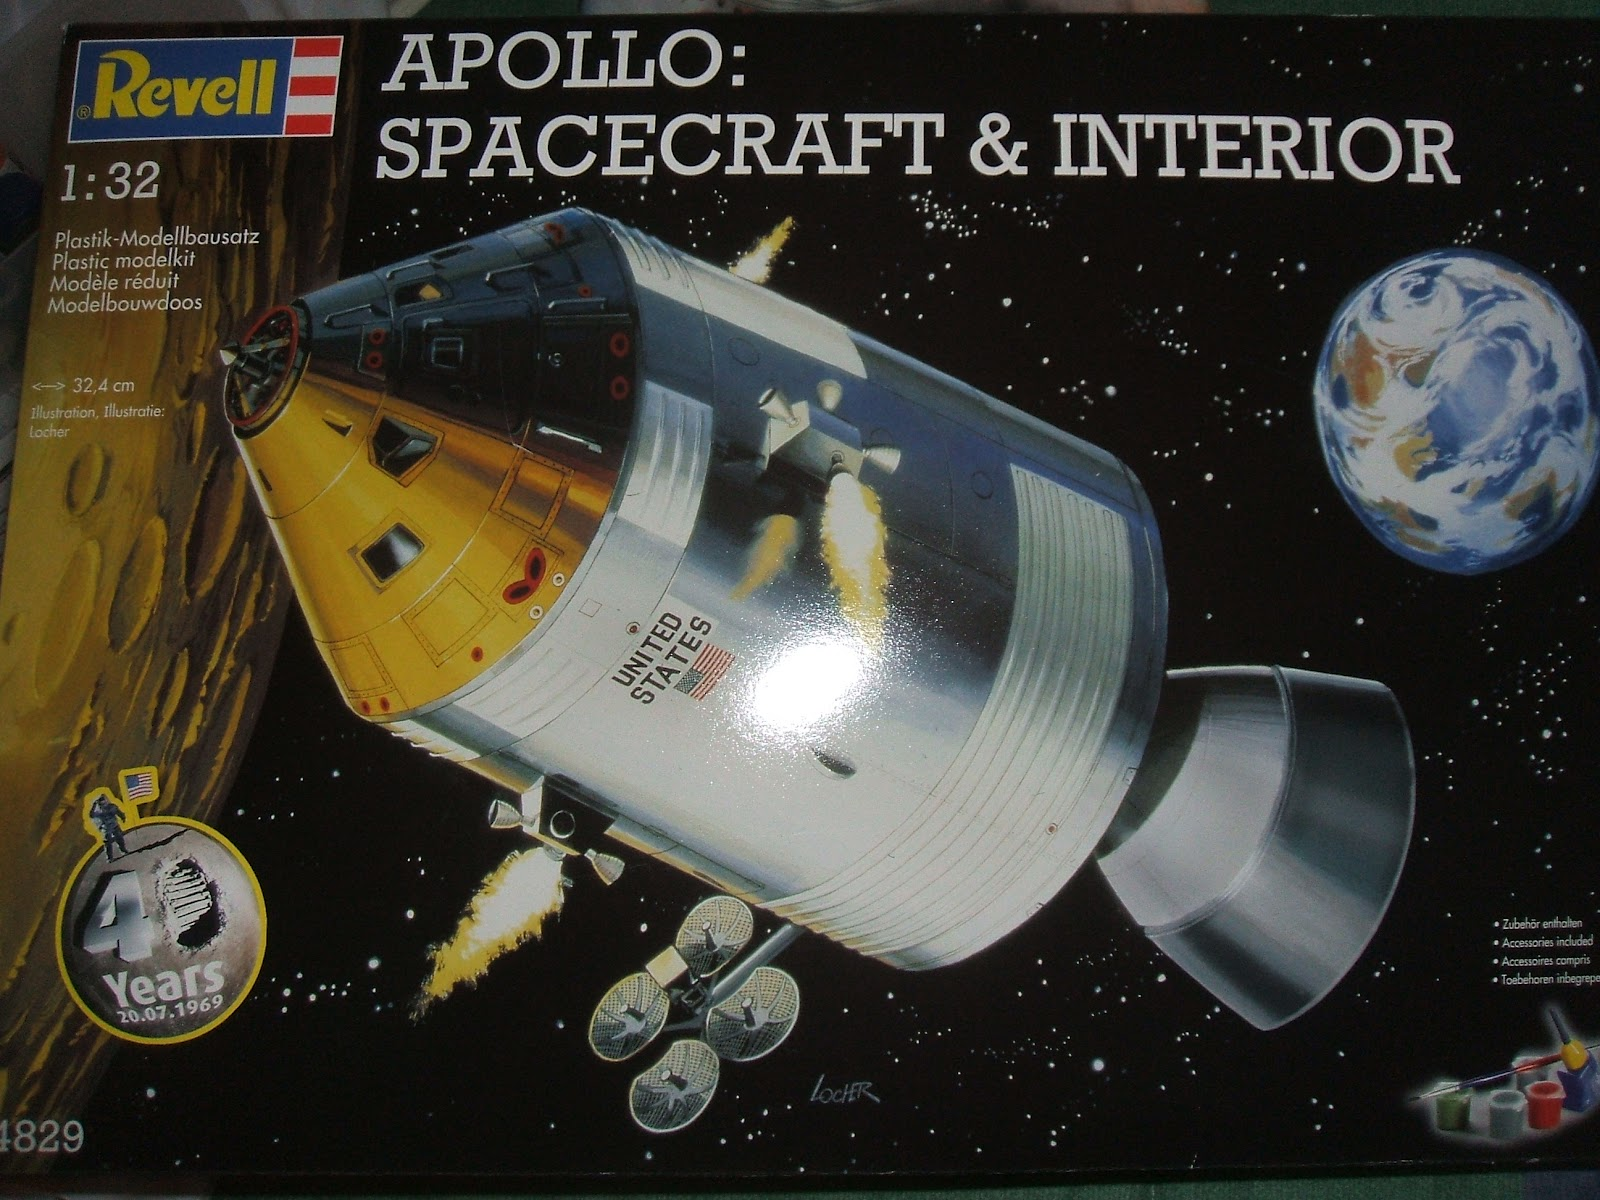 rocket ship diagram honeywell he360 humidifier wiring inside apollo spacecraft - pics about space